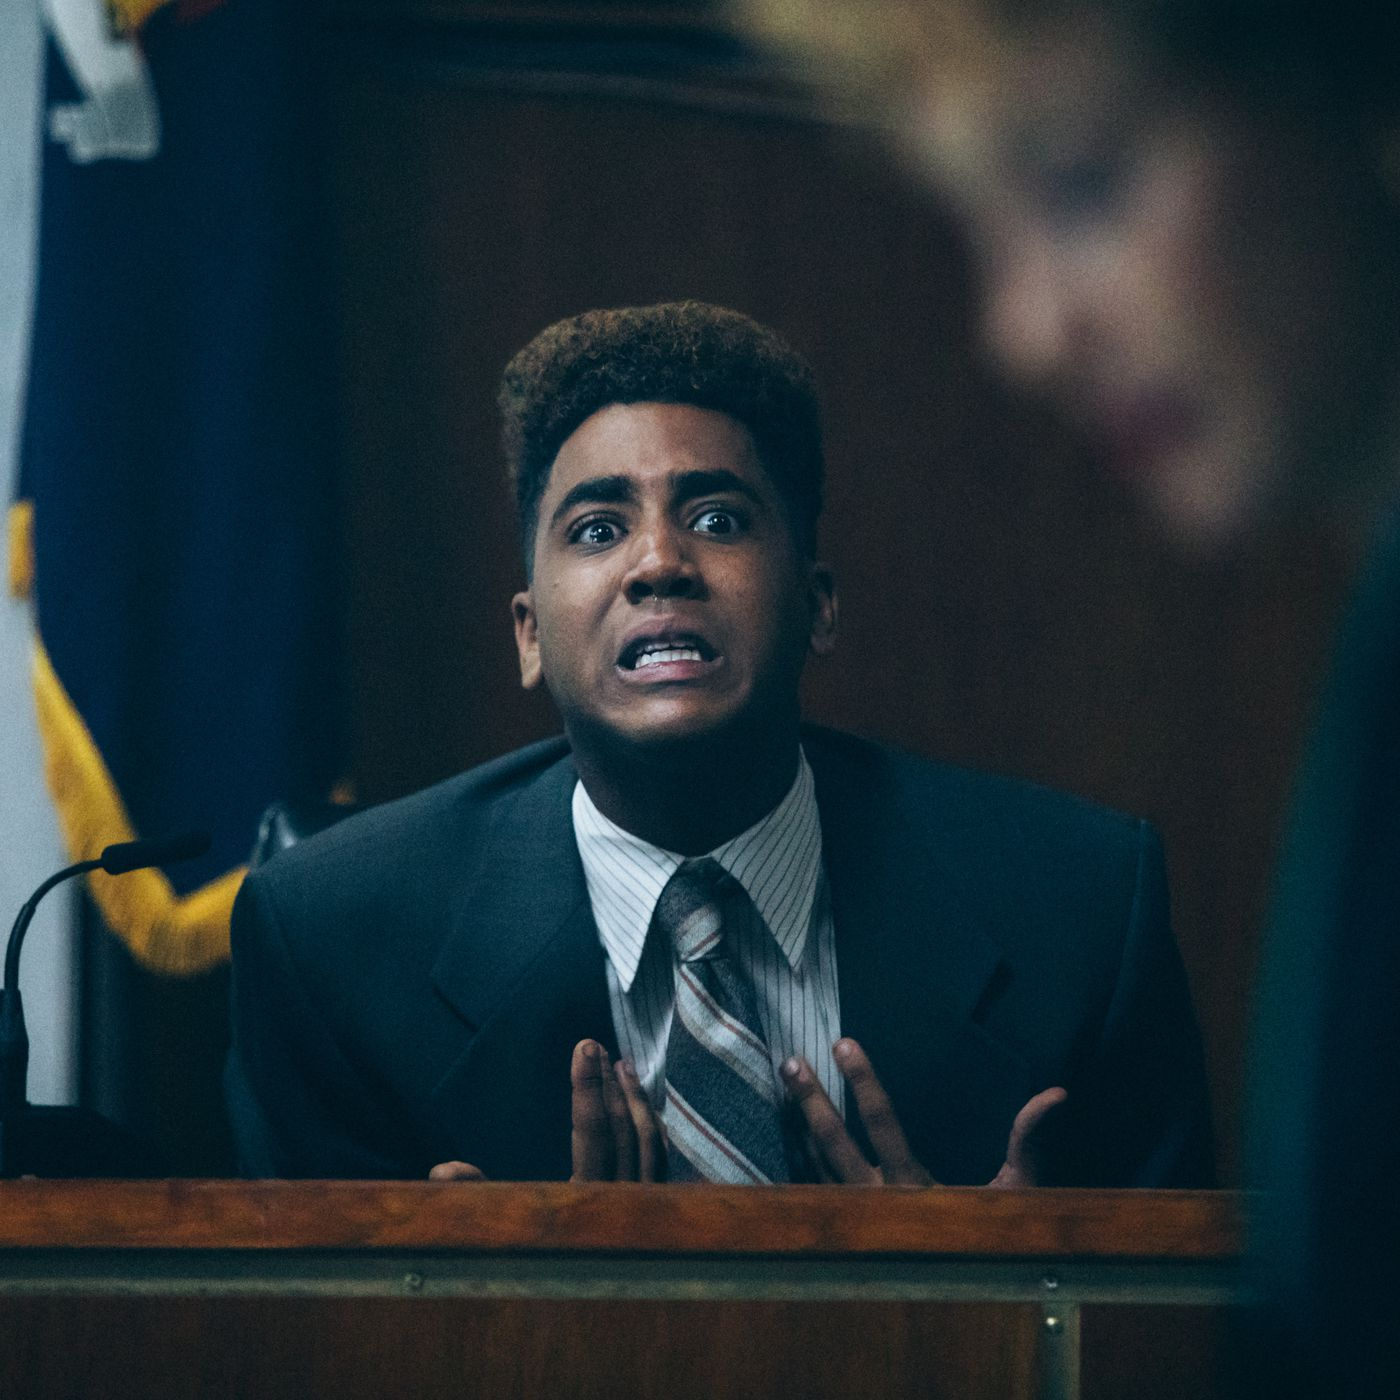 Netflix's When They See Us is the enraging story of the Central Park